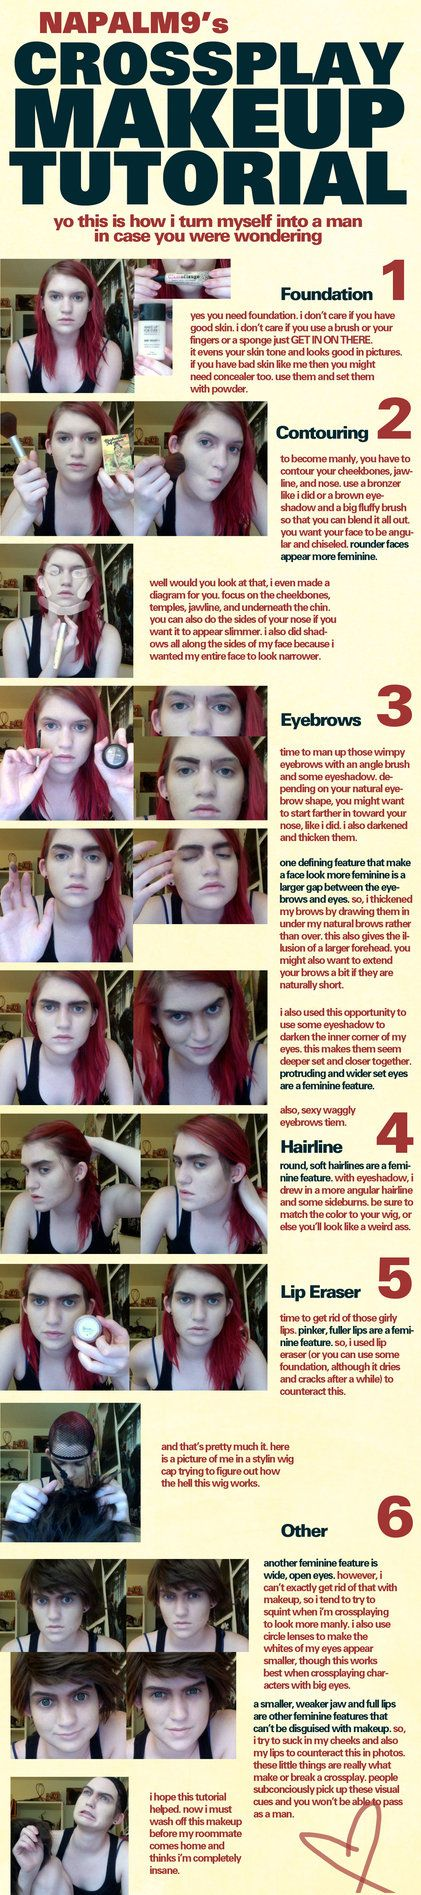 'Crossplay' Makeup Tutorial—for manly disguises... @Madeleine B Elizabeth